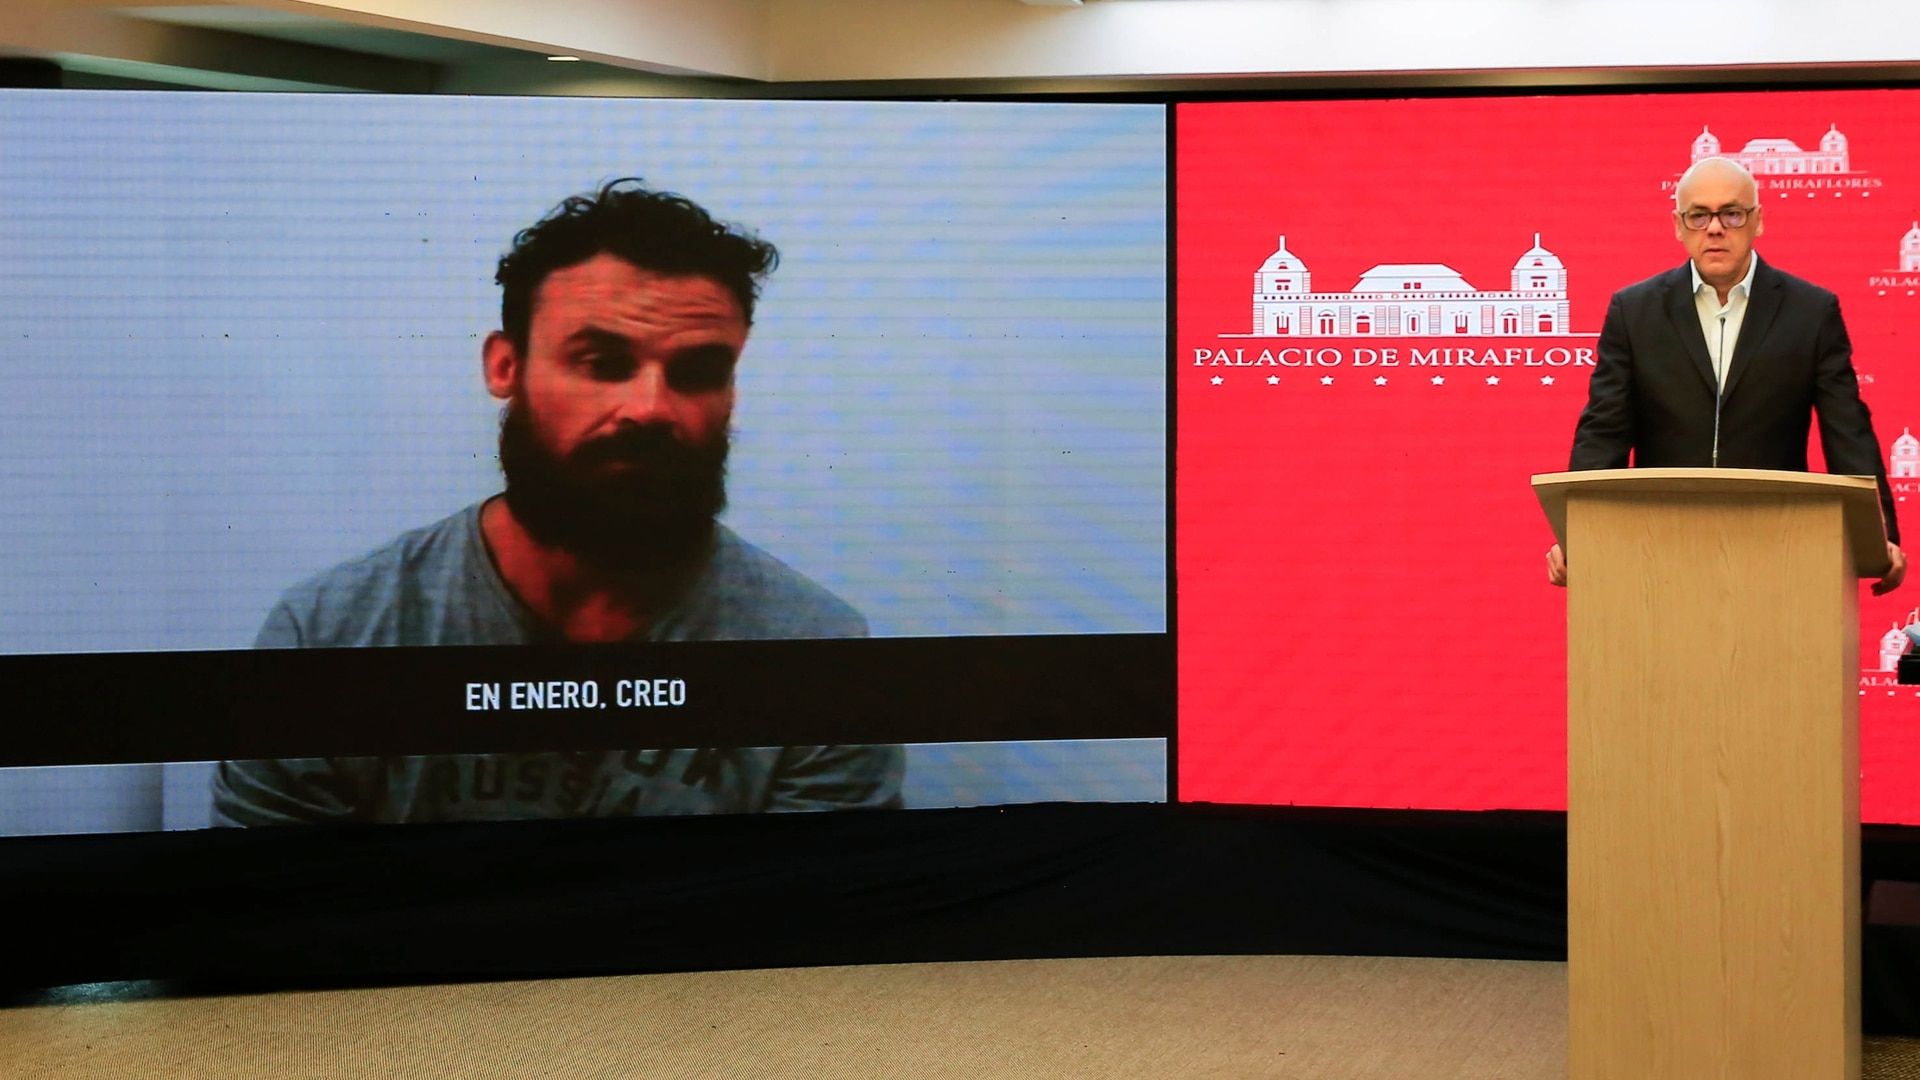 Venezuelan officials show a video of former Green Beret Airon Berry during a televised statement in Caracas, Venezuela, May 7, 2020. (Venezuela's Ministry of Communication via AP)